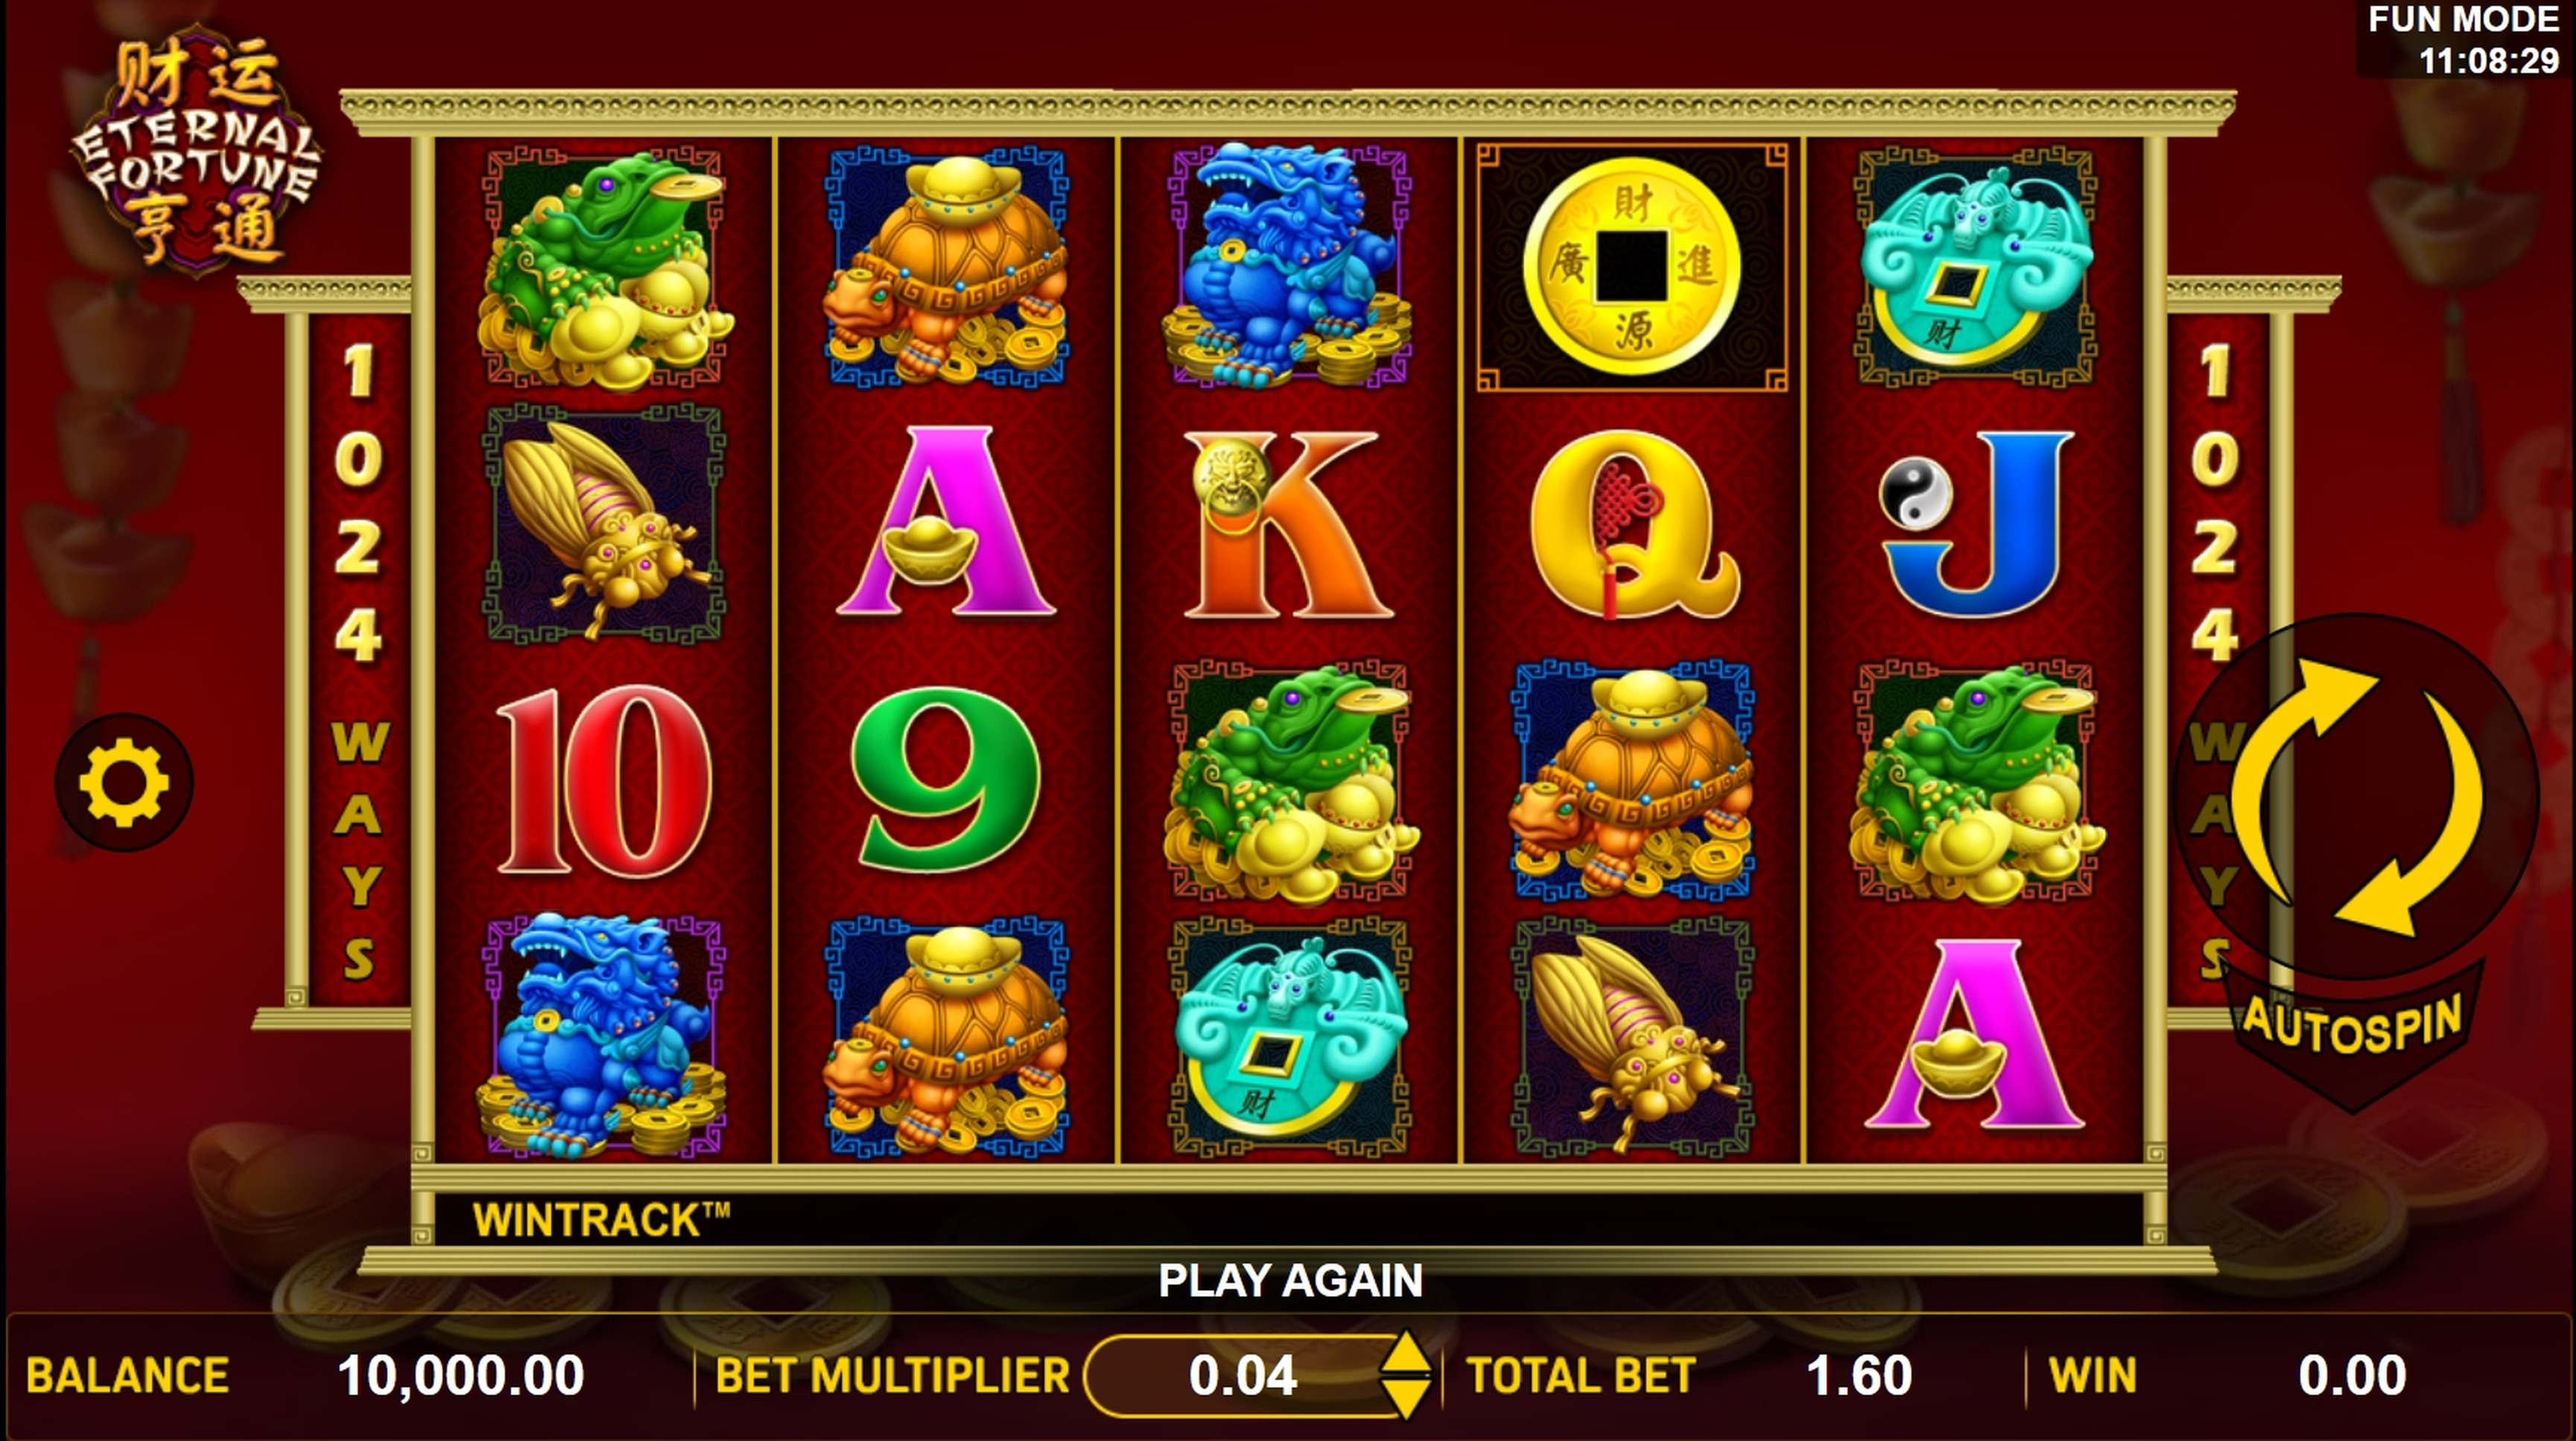 Reels in Eternal Fortune Slot Game by Aspect Gaming